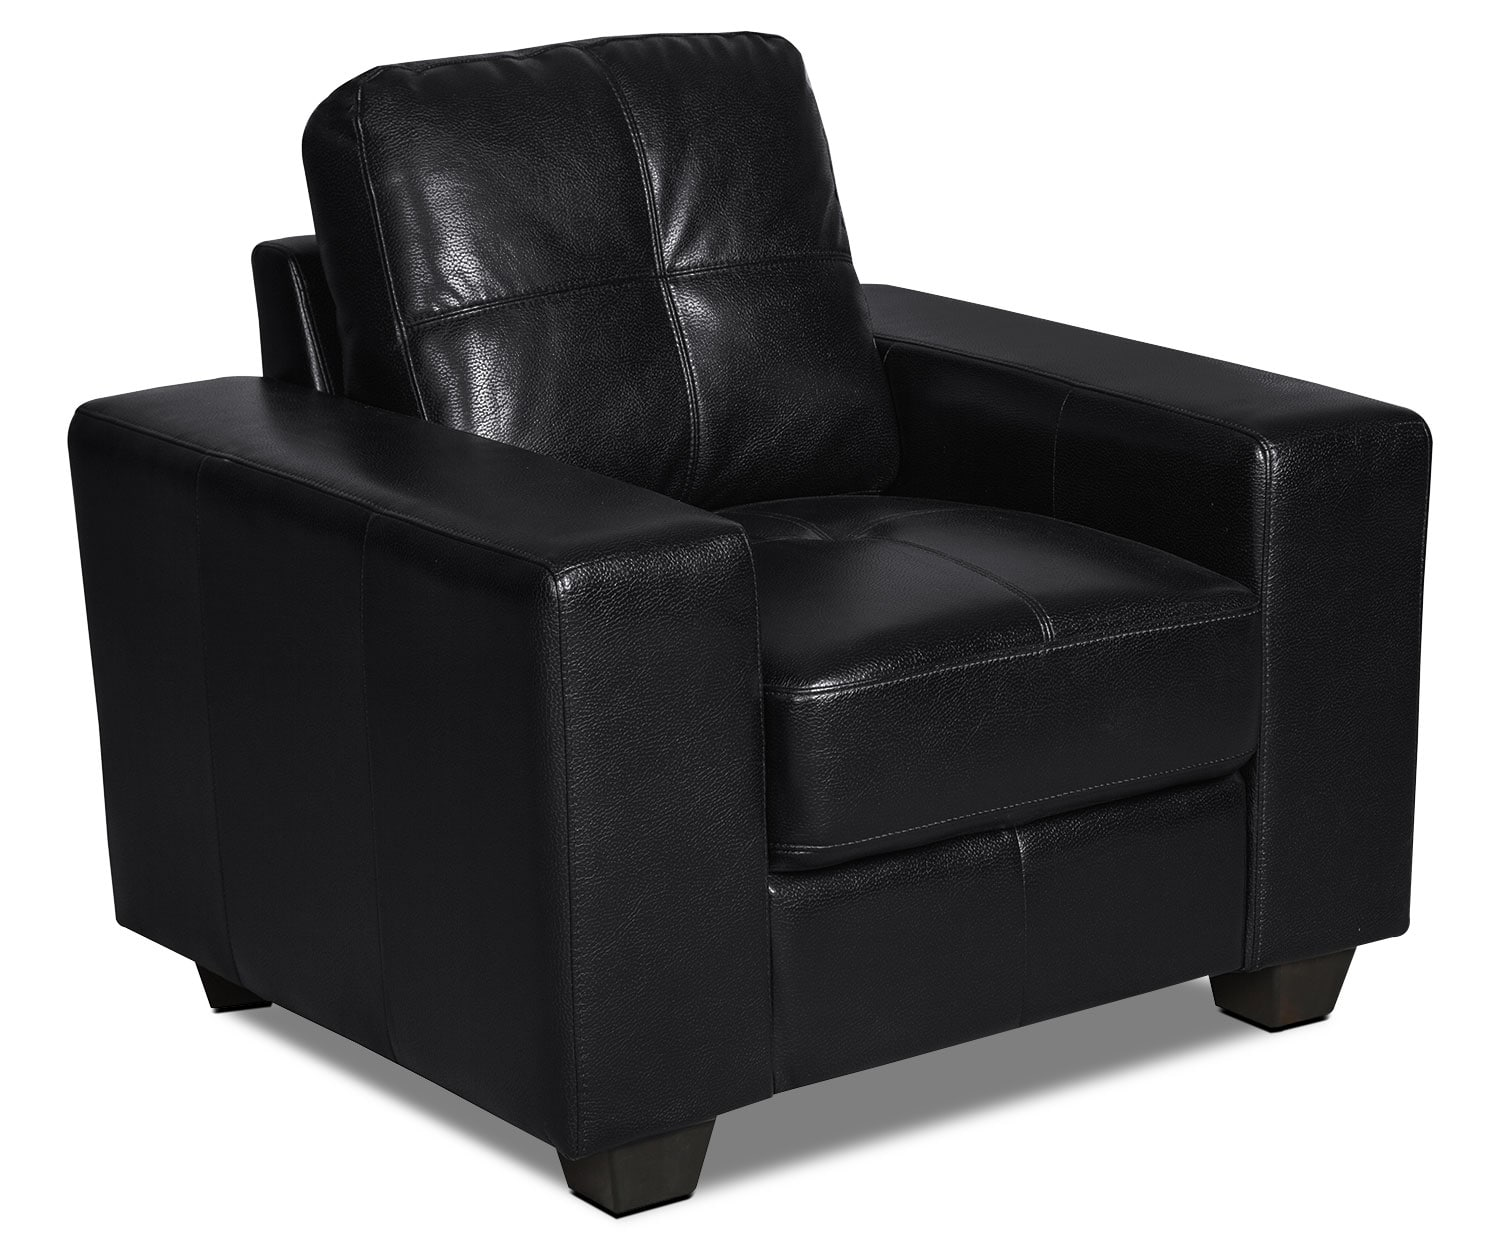 Costa Leather-Look Fabric Chair – Black